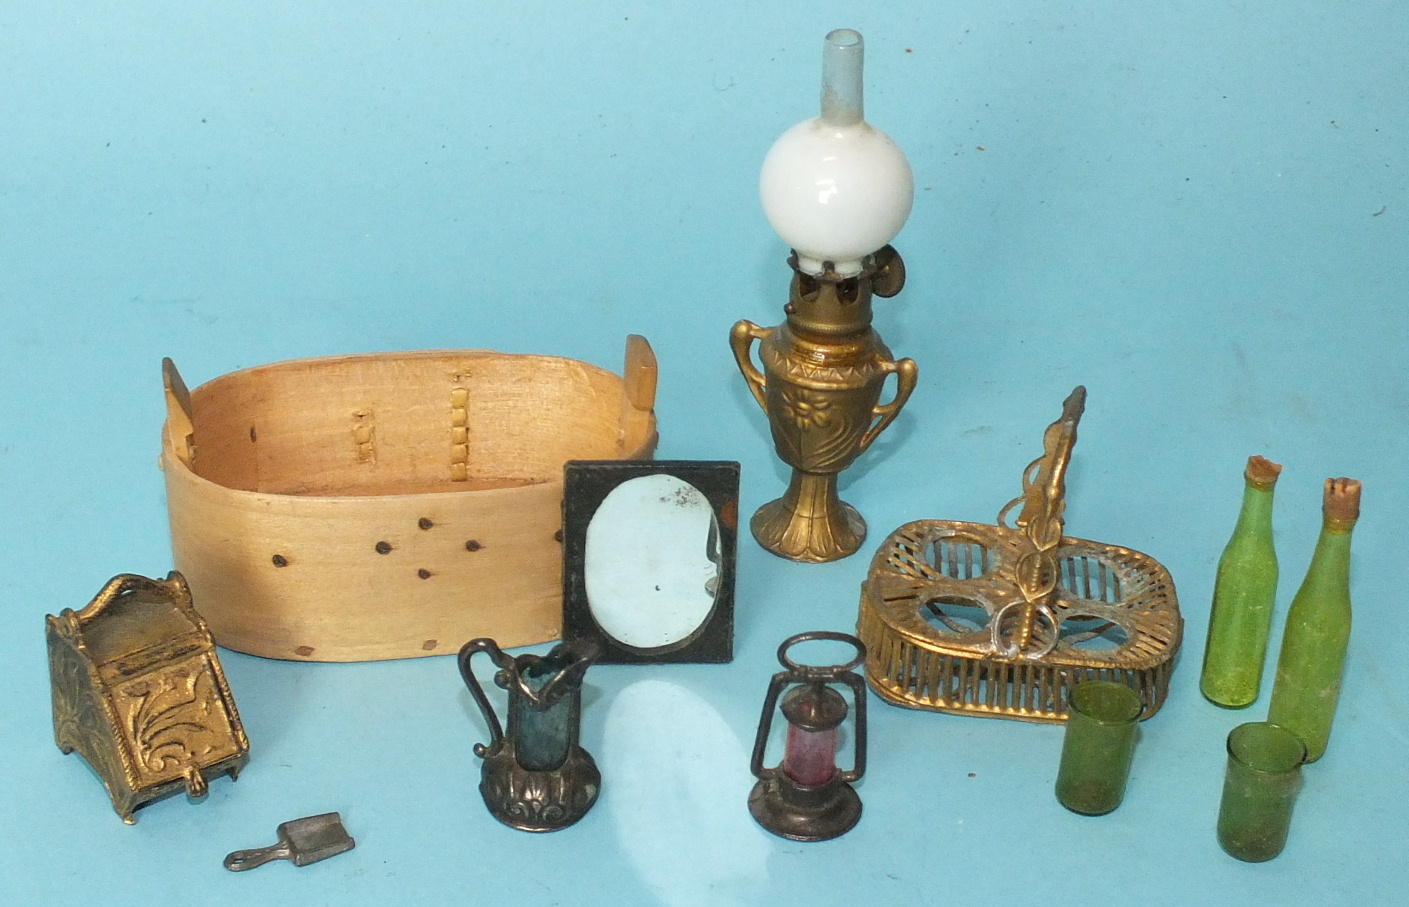 Lot 458 - An Edwardian doll's house oil lamp with gilt metal urn base and glass chimney, a gilt metal coal